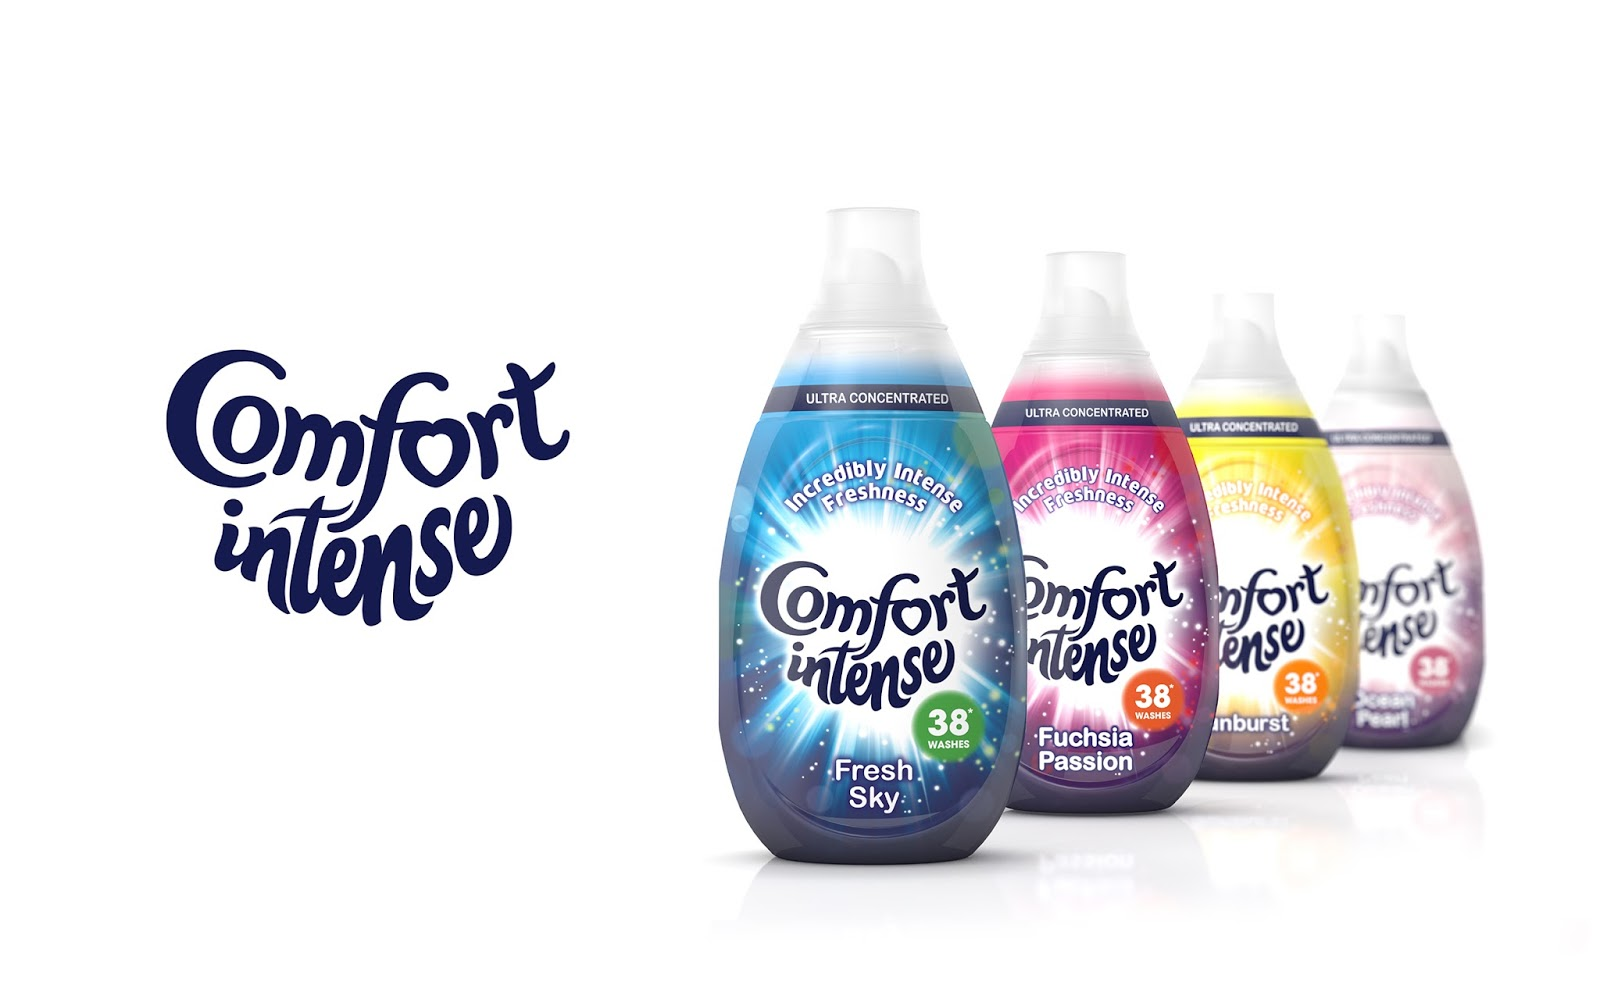 comfort intense on packaging of the world creative package design